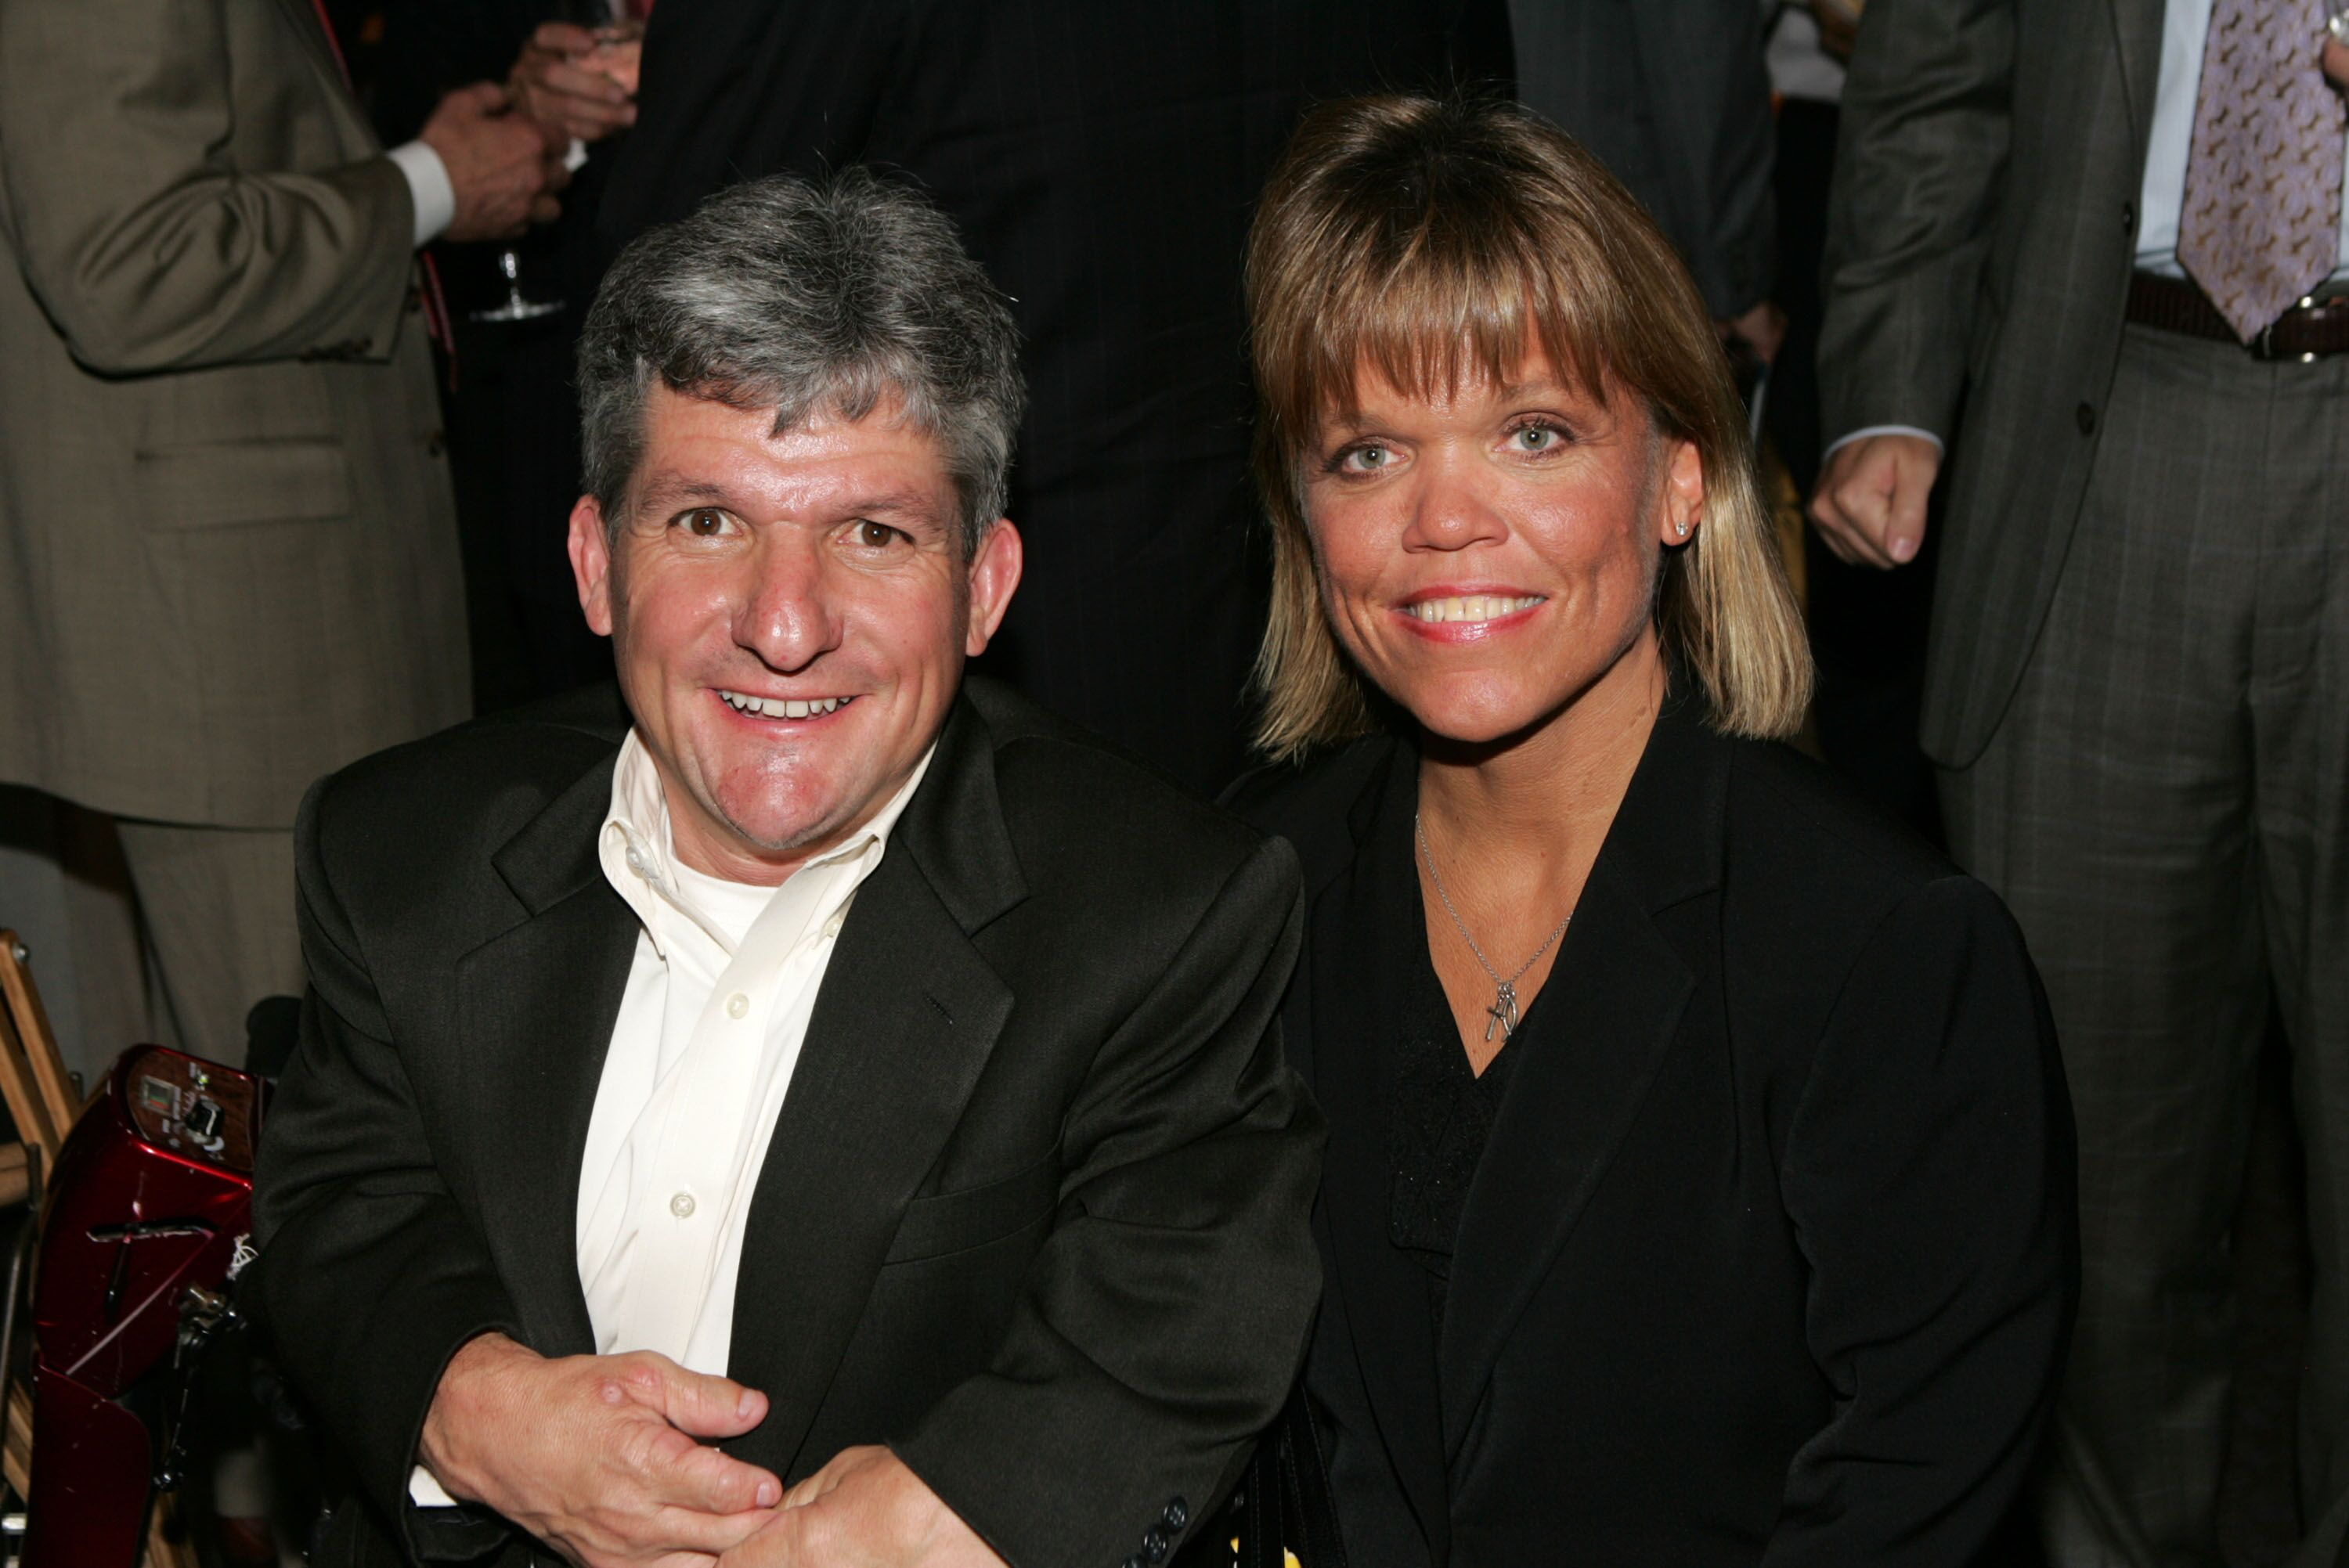 Matt and Amy Roloff attend the Discovery Upfront Presentation. | Source: Getty Images